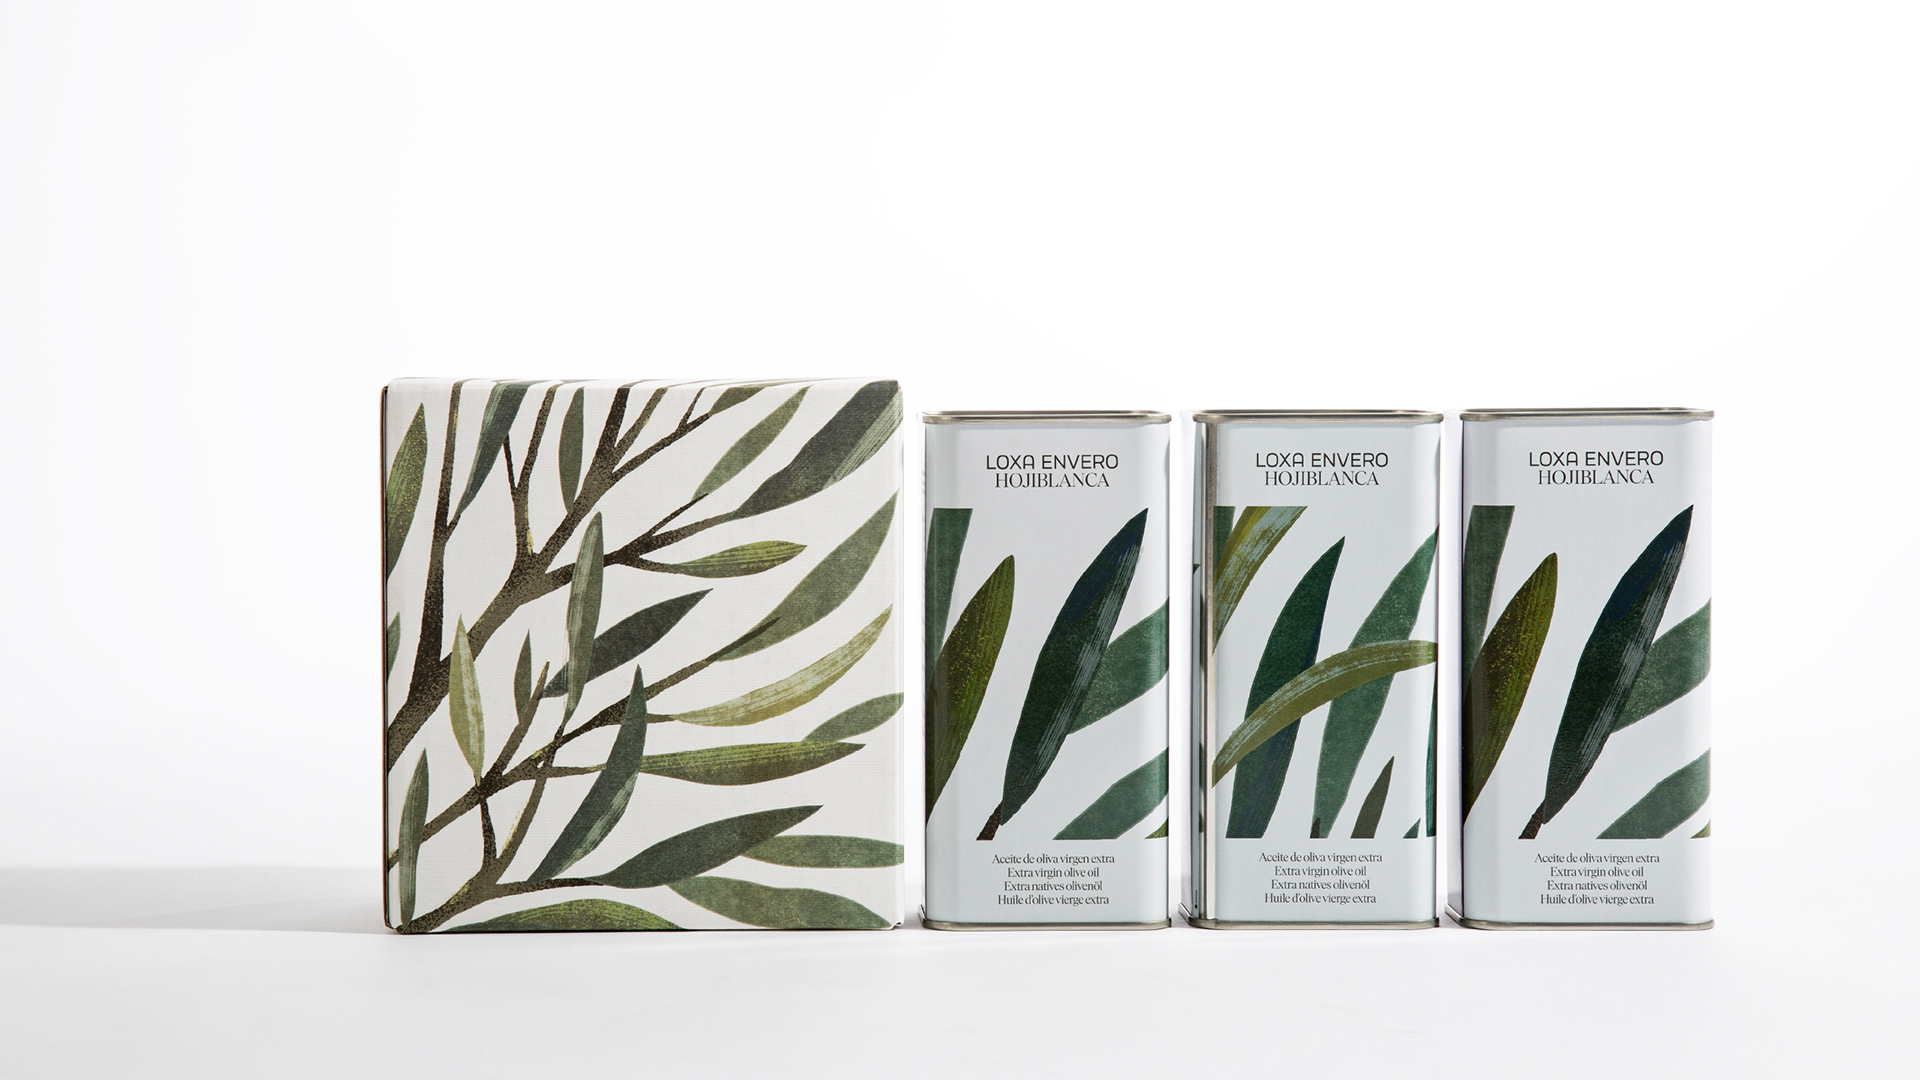 Visual System and Packaging Design for Loxa Envero Extra Virgin Olive Oil by Buenaventura Studio